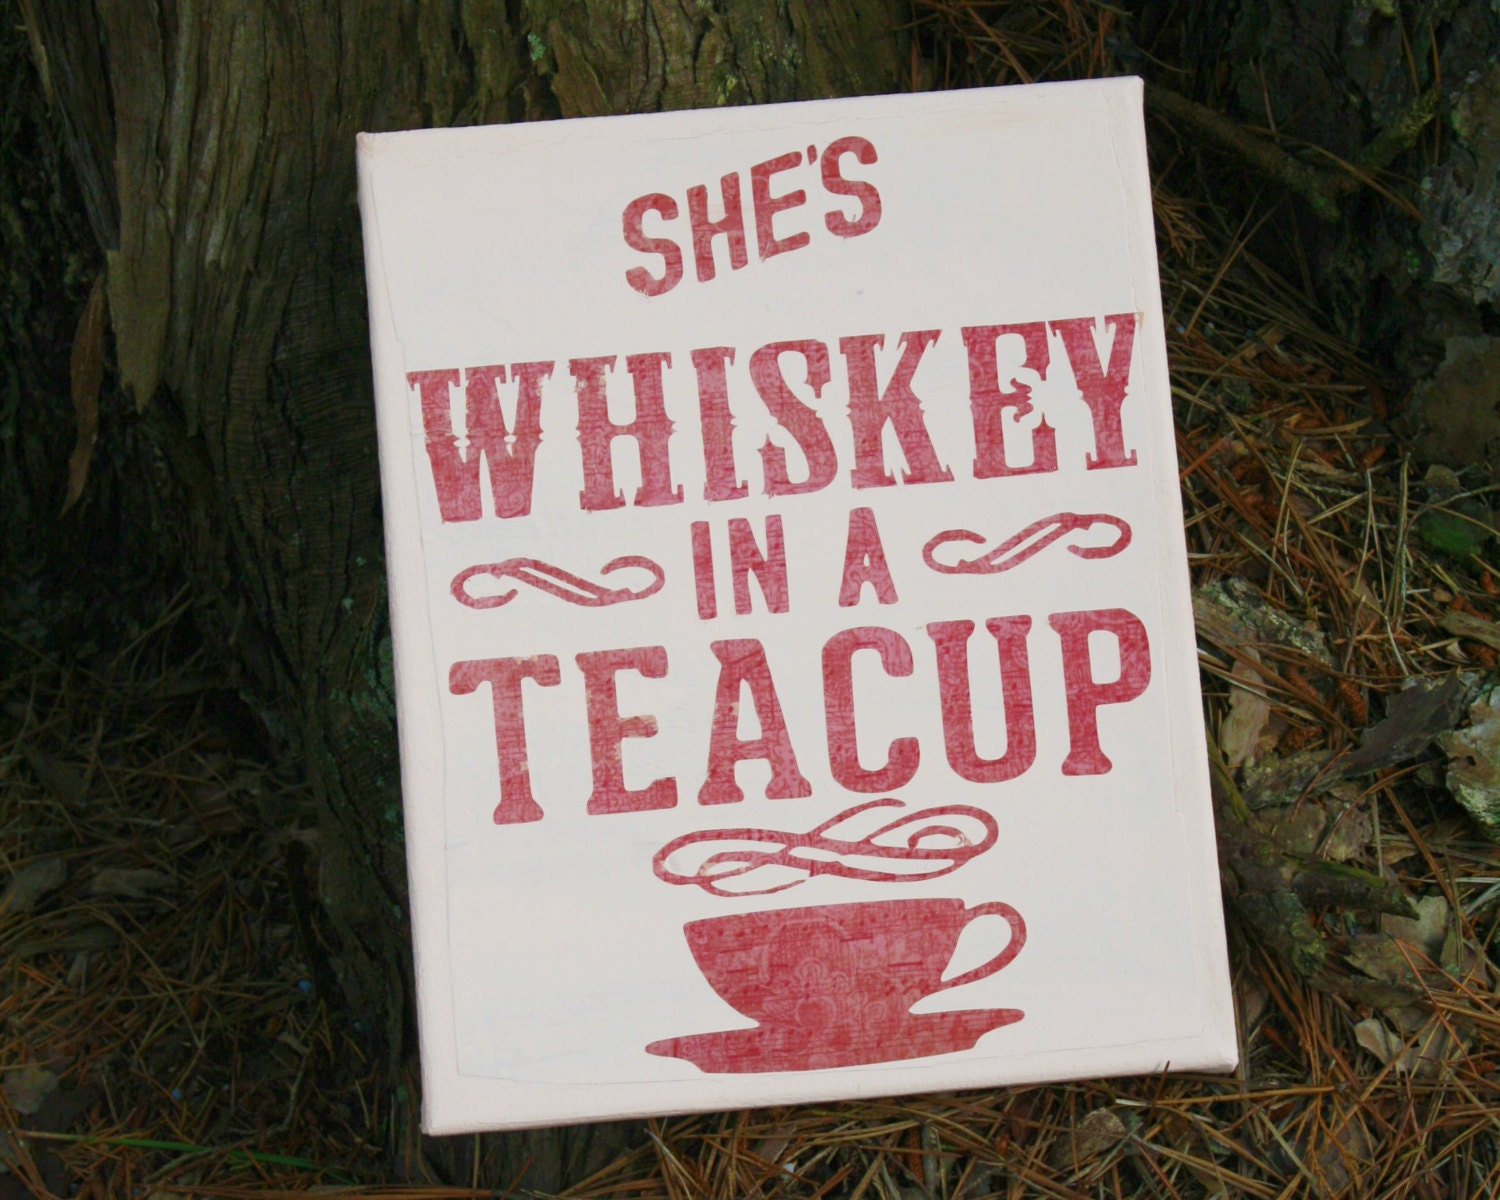 Cup Half Full Quotes: She's Whiskey In A Teacup Canvas Quote Art Country